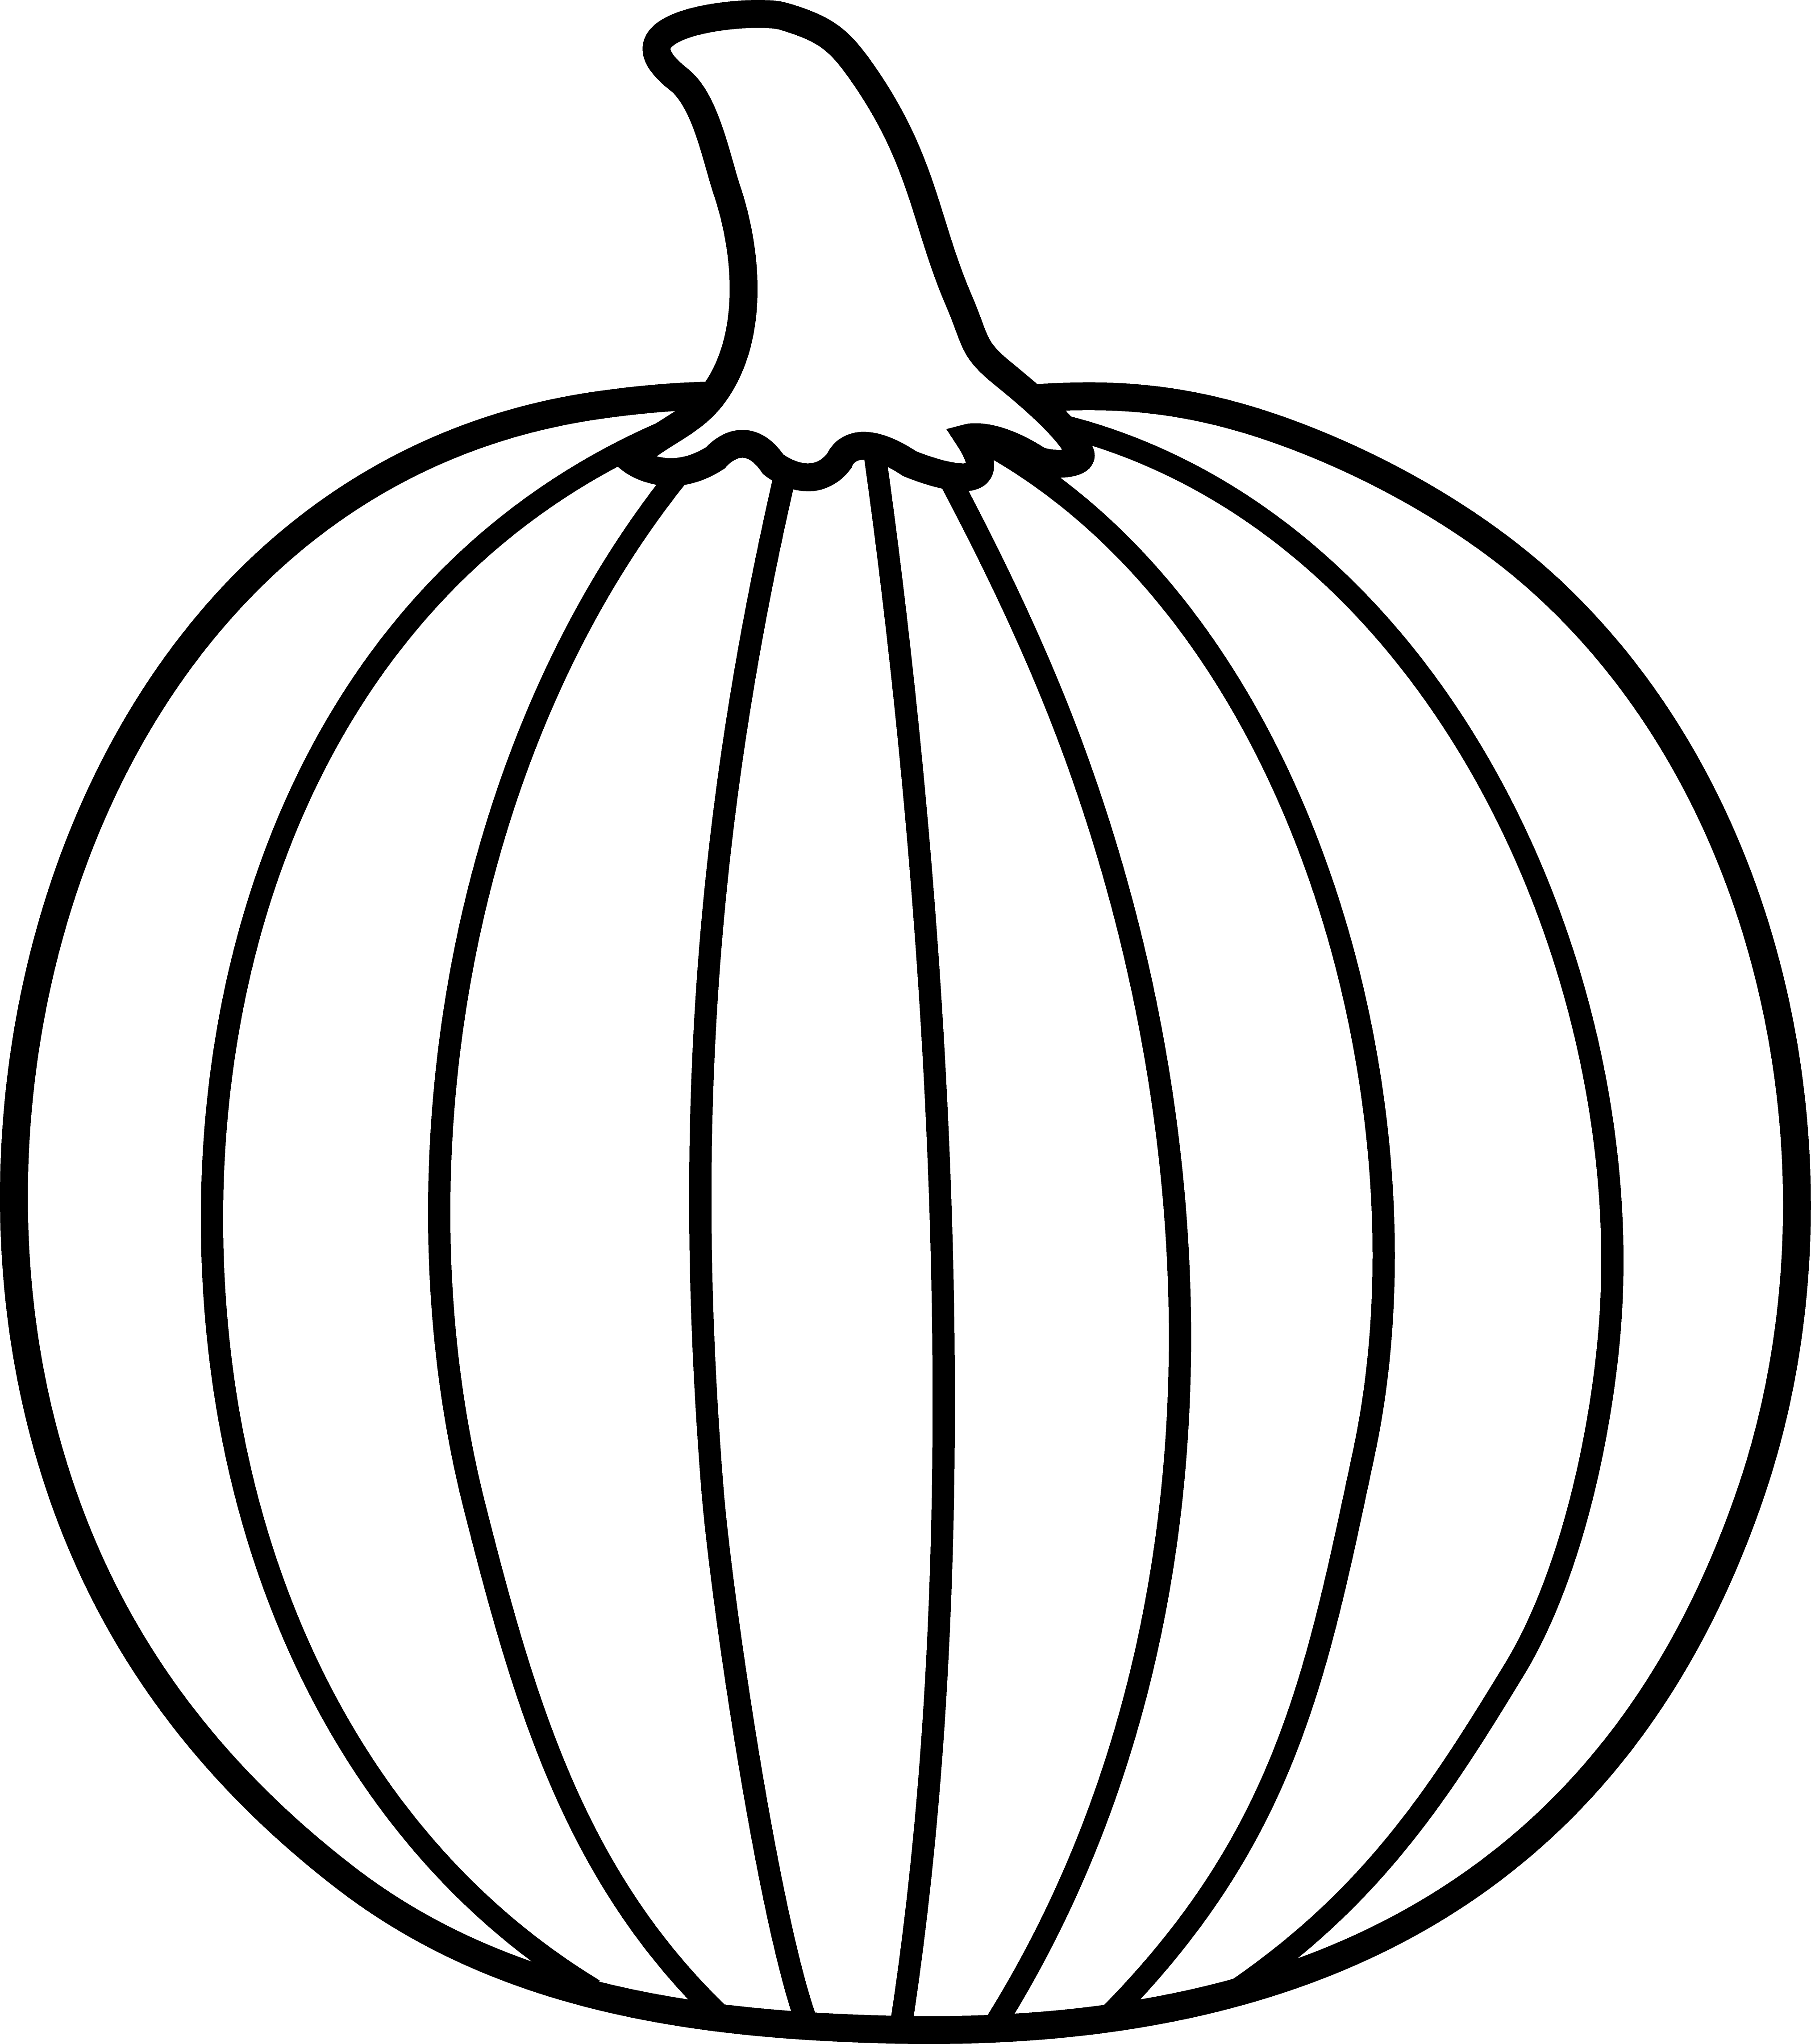 Clipart fall chalk free pumpkin banner library Pumpkin Outline Drawing at GetDrawings.com | Free for personal use ... banner library